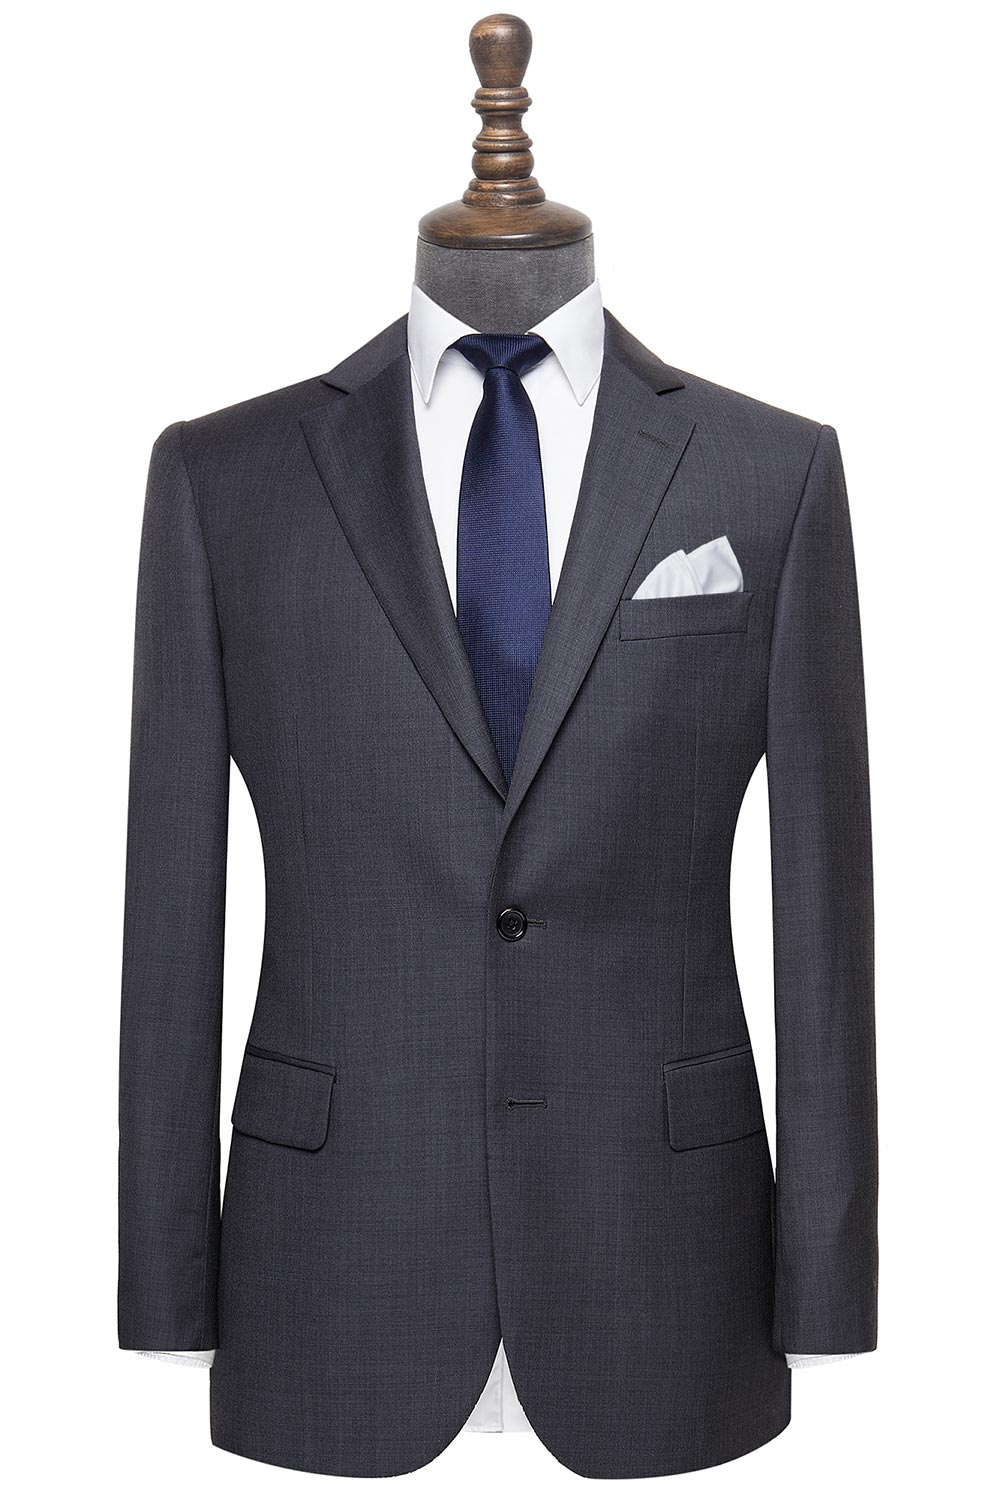 InStitchu Collection The Salford mens suit